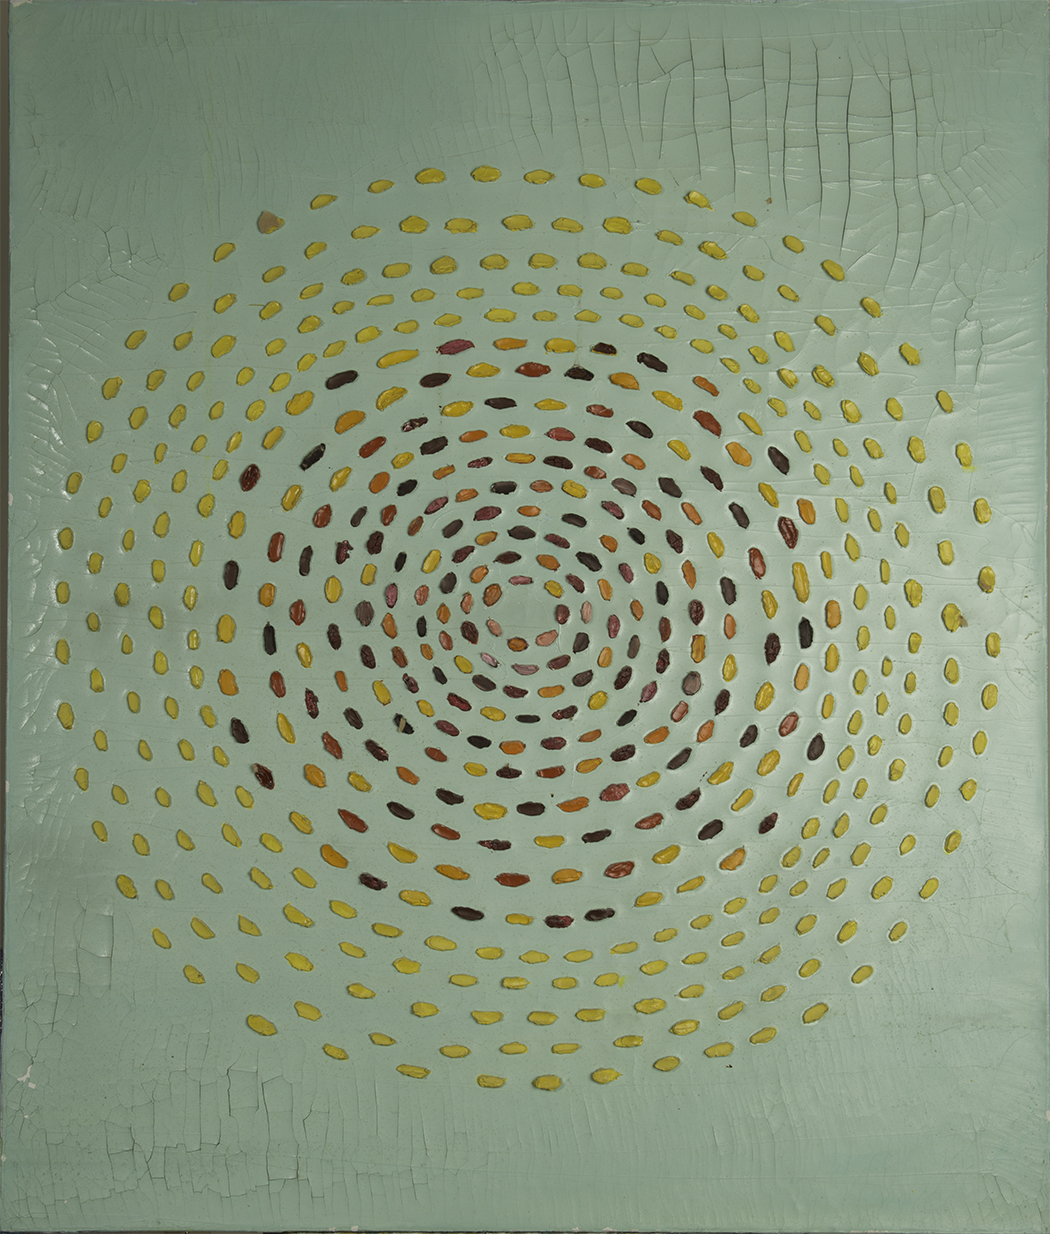 THE WHIRLIGIG OF iCHING II 1971  oil on canvas 40x50 inches